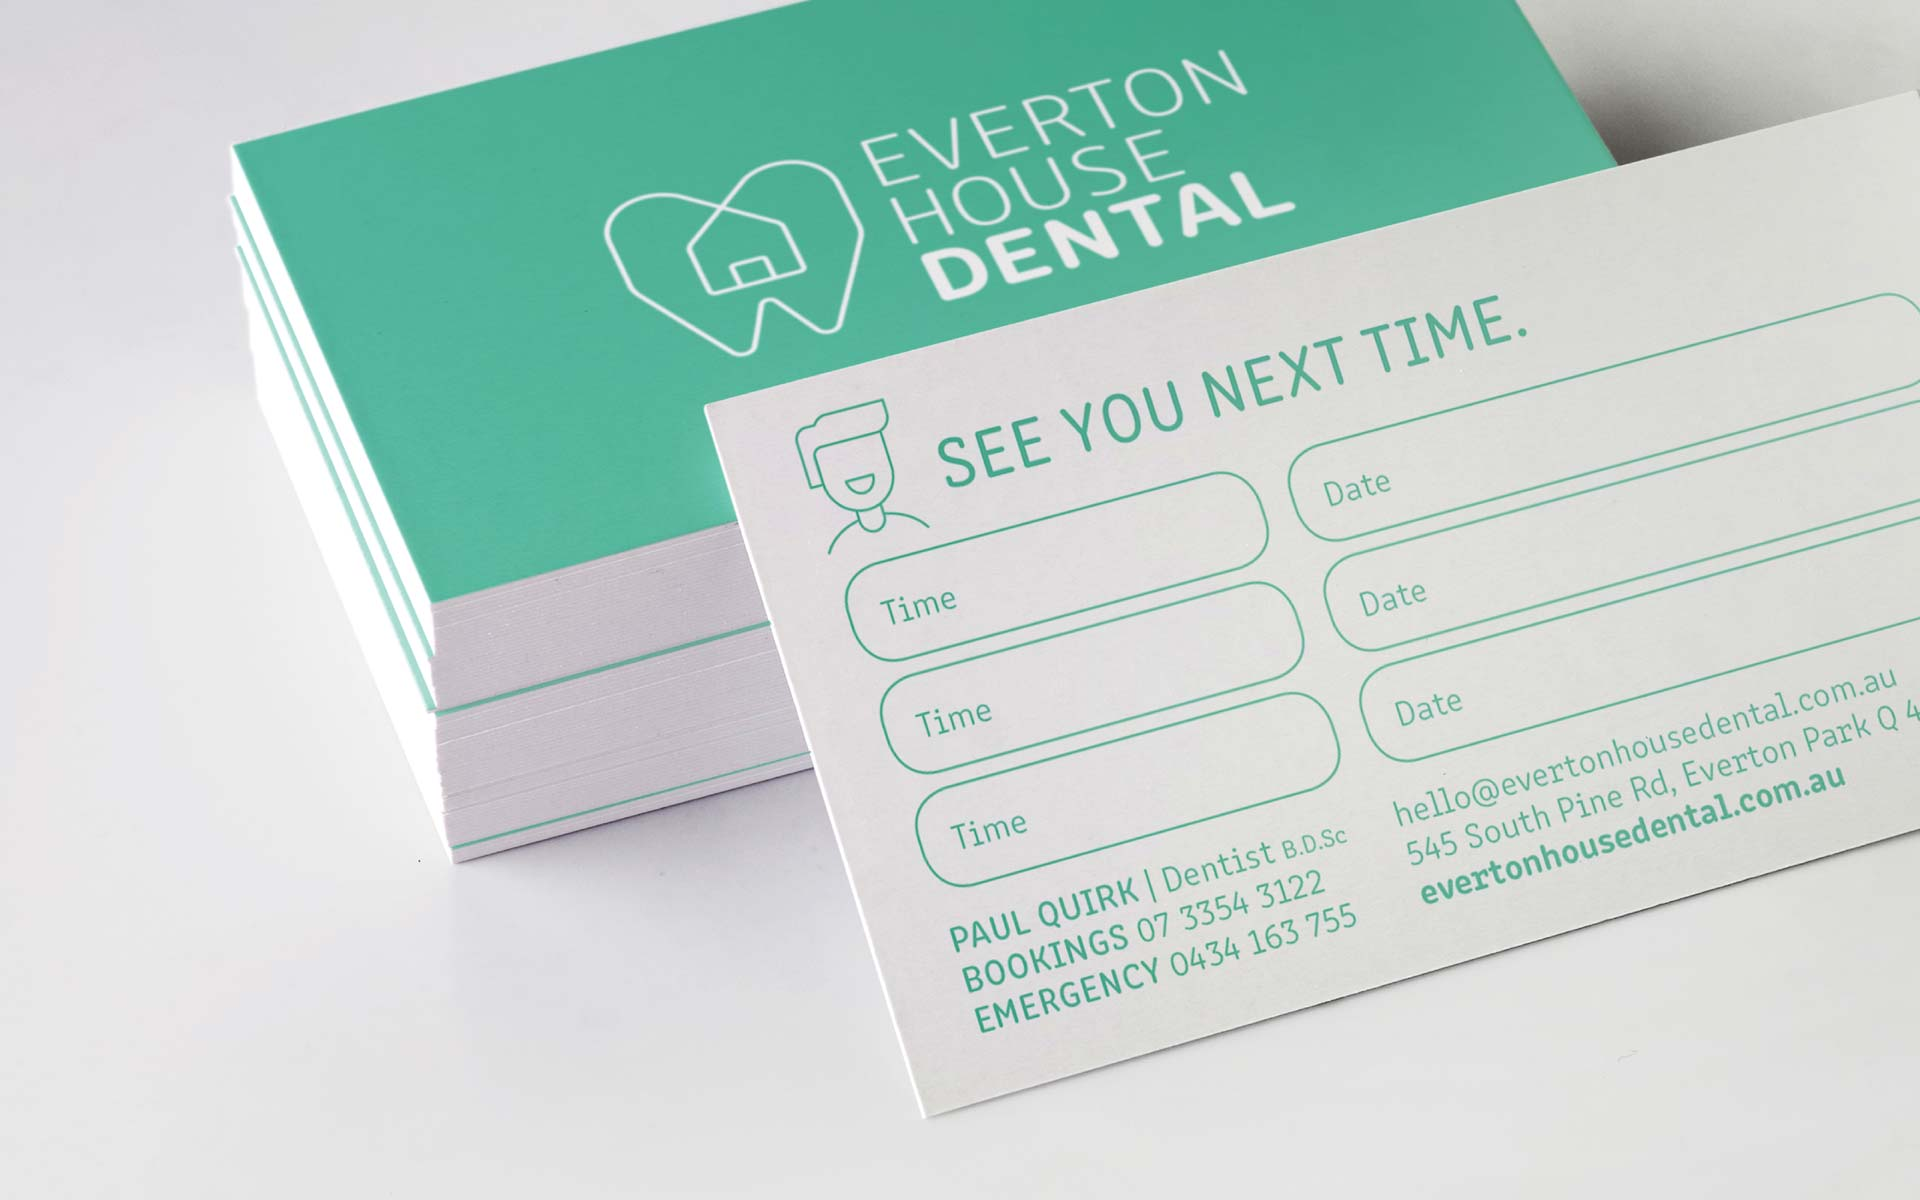 Everton House Dental Web Design Appointment Card